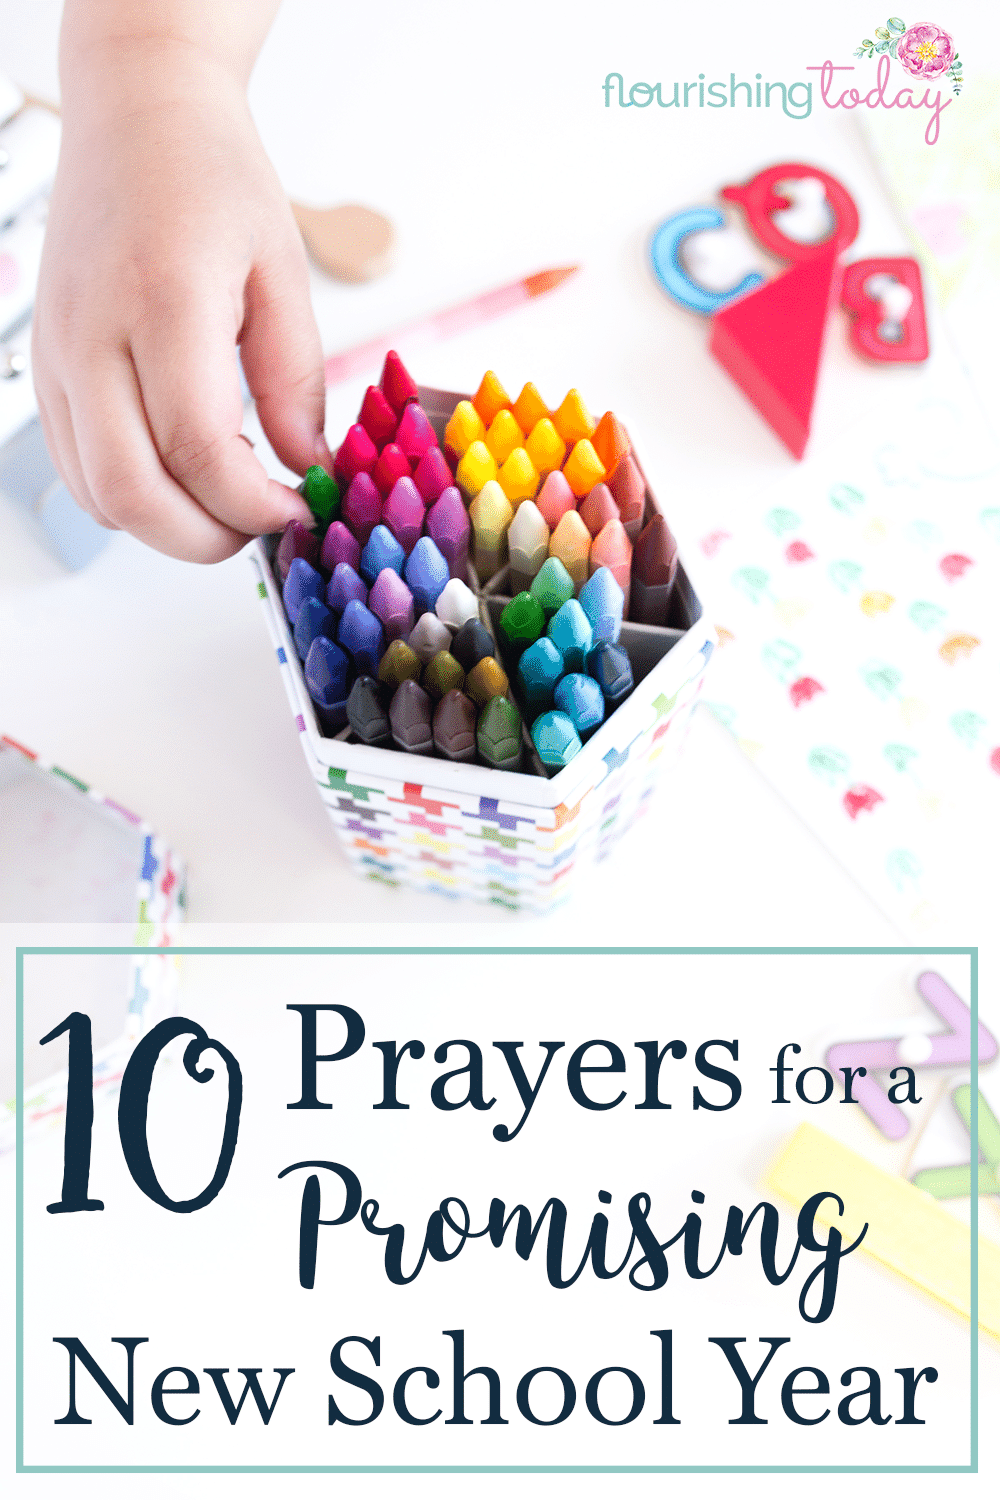 Do you have regular prayers to cover you and your kids this year? I've begun writing my prayers for a new school year and I'm sharing them here!